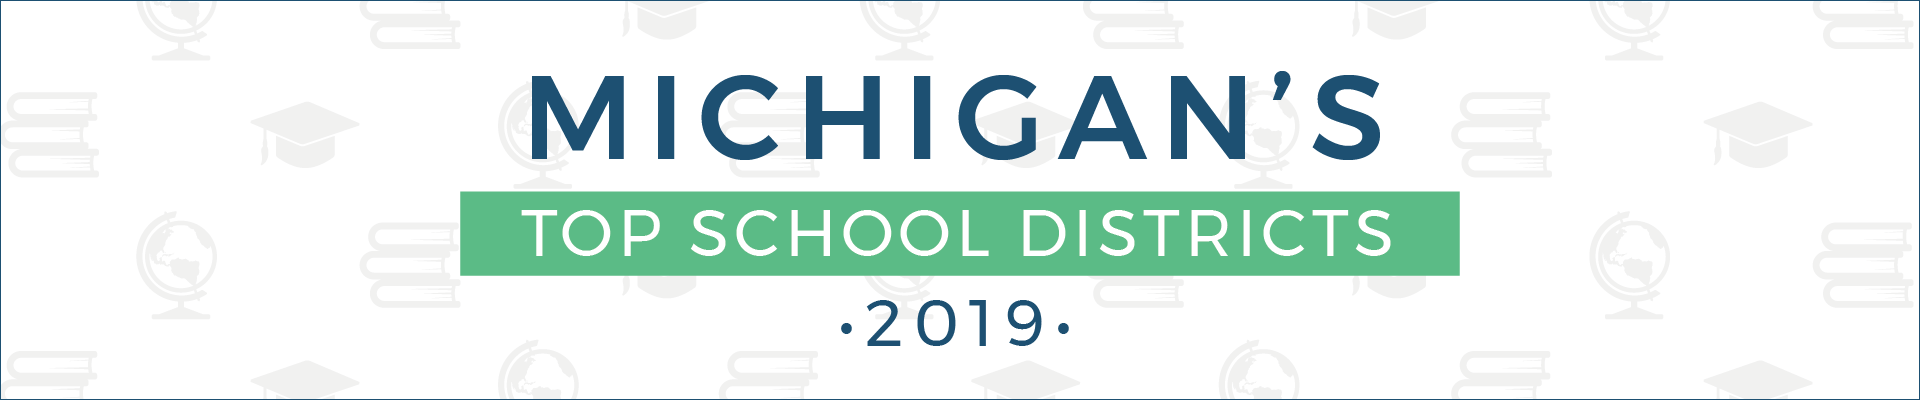 top school districts, 2019 - michigan - banner